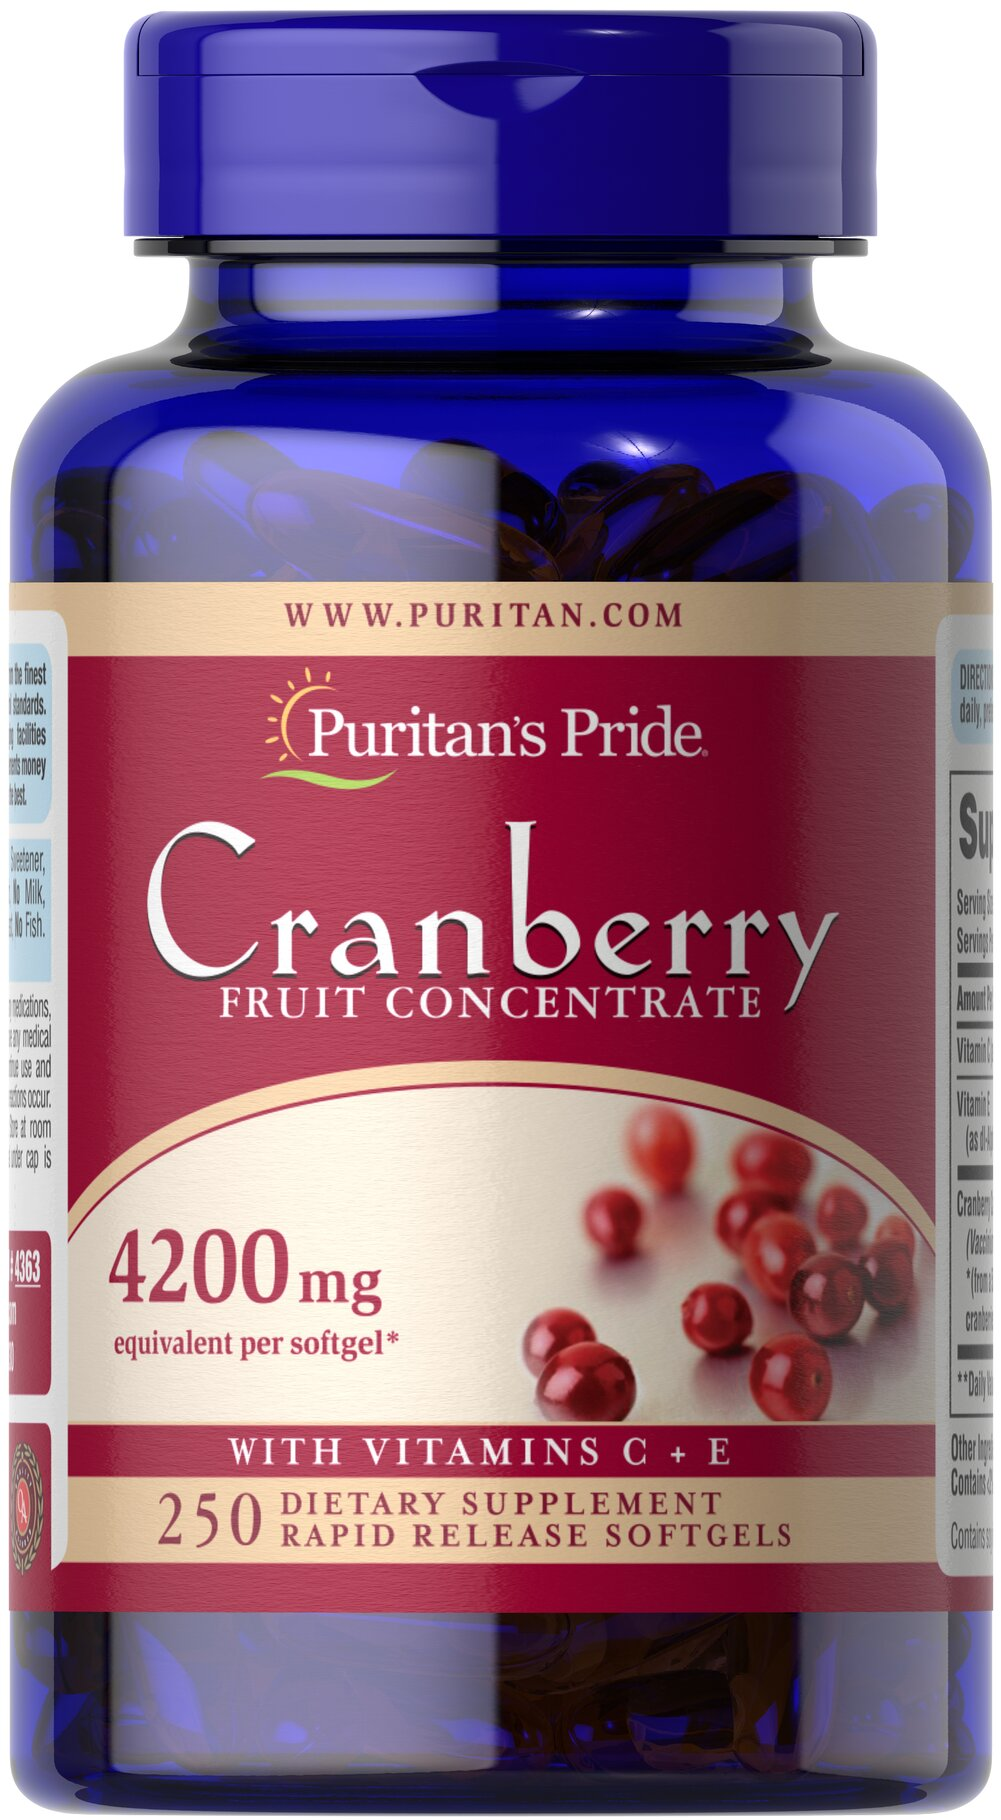 Cranberry Fruit Concentrate with C & E 4200 mg Thumbnail Alternate Bottle View